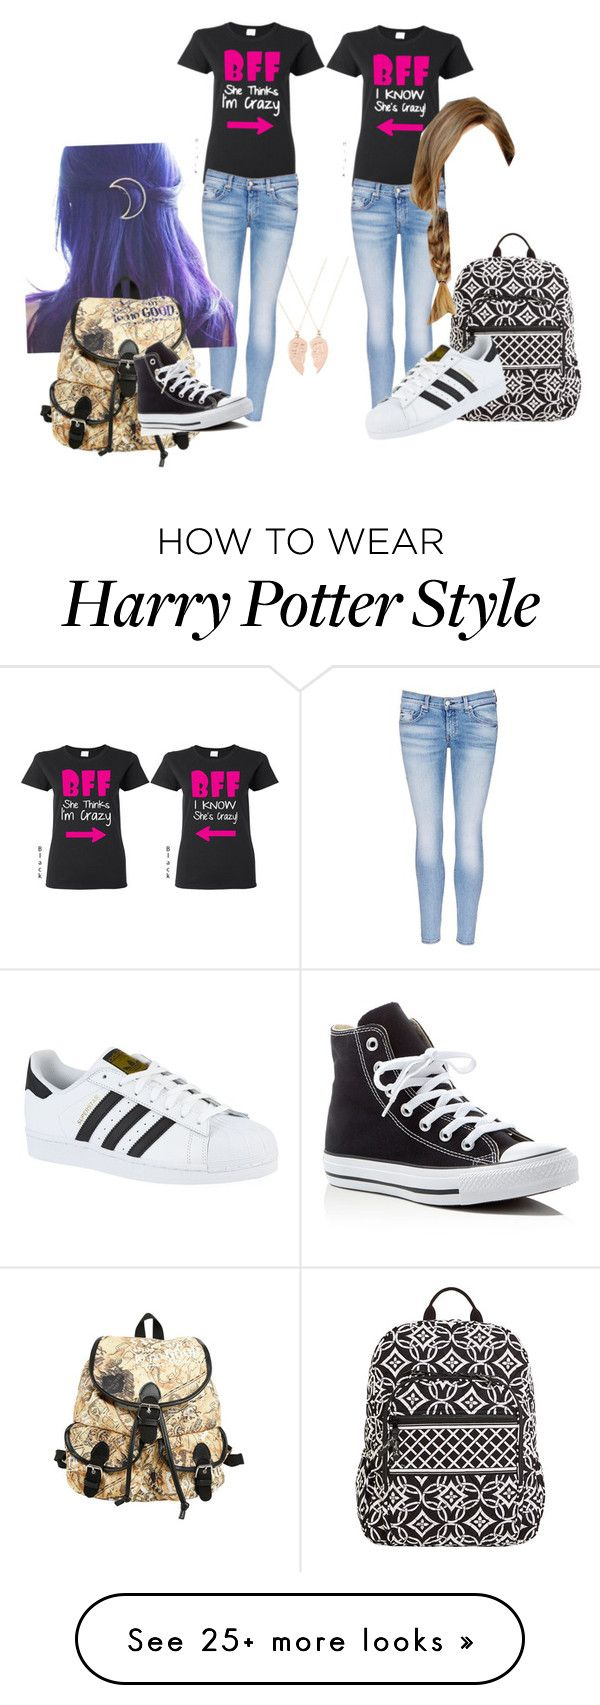 """Me and da bestie"" by polyesthers on Polyvore featuring rag & bone/JEAN, Converse, Vera Bradley, adidas, Monsoon and plus size clothing"